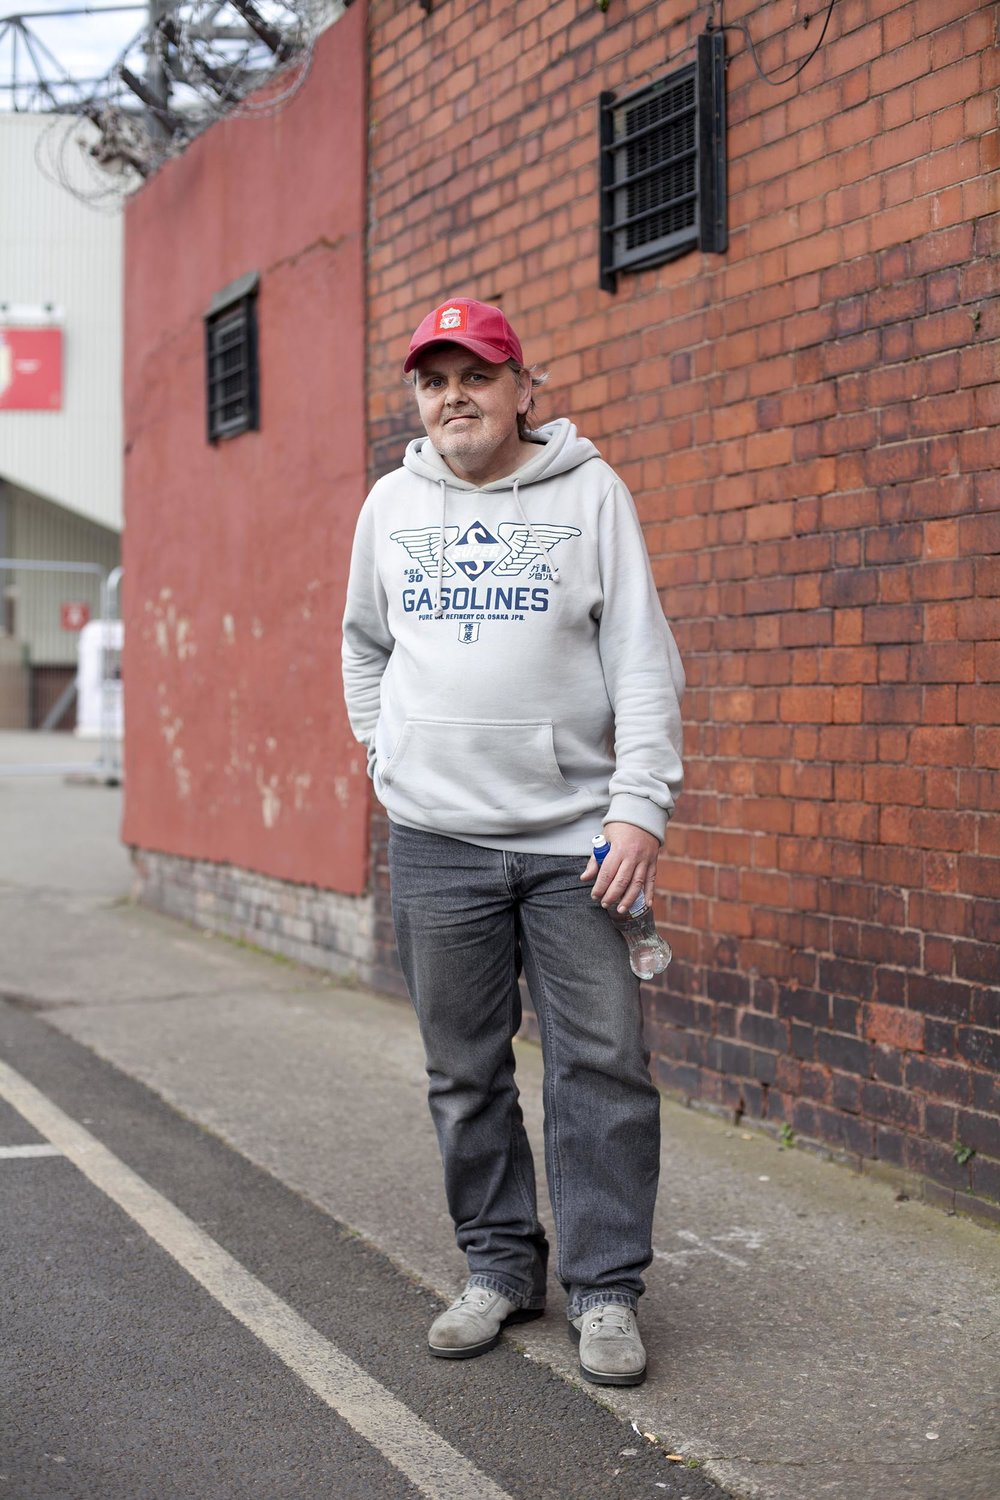 Local fan near Anfield, Liverpool - Documentary Photography